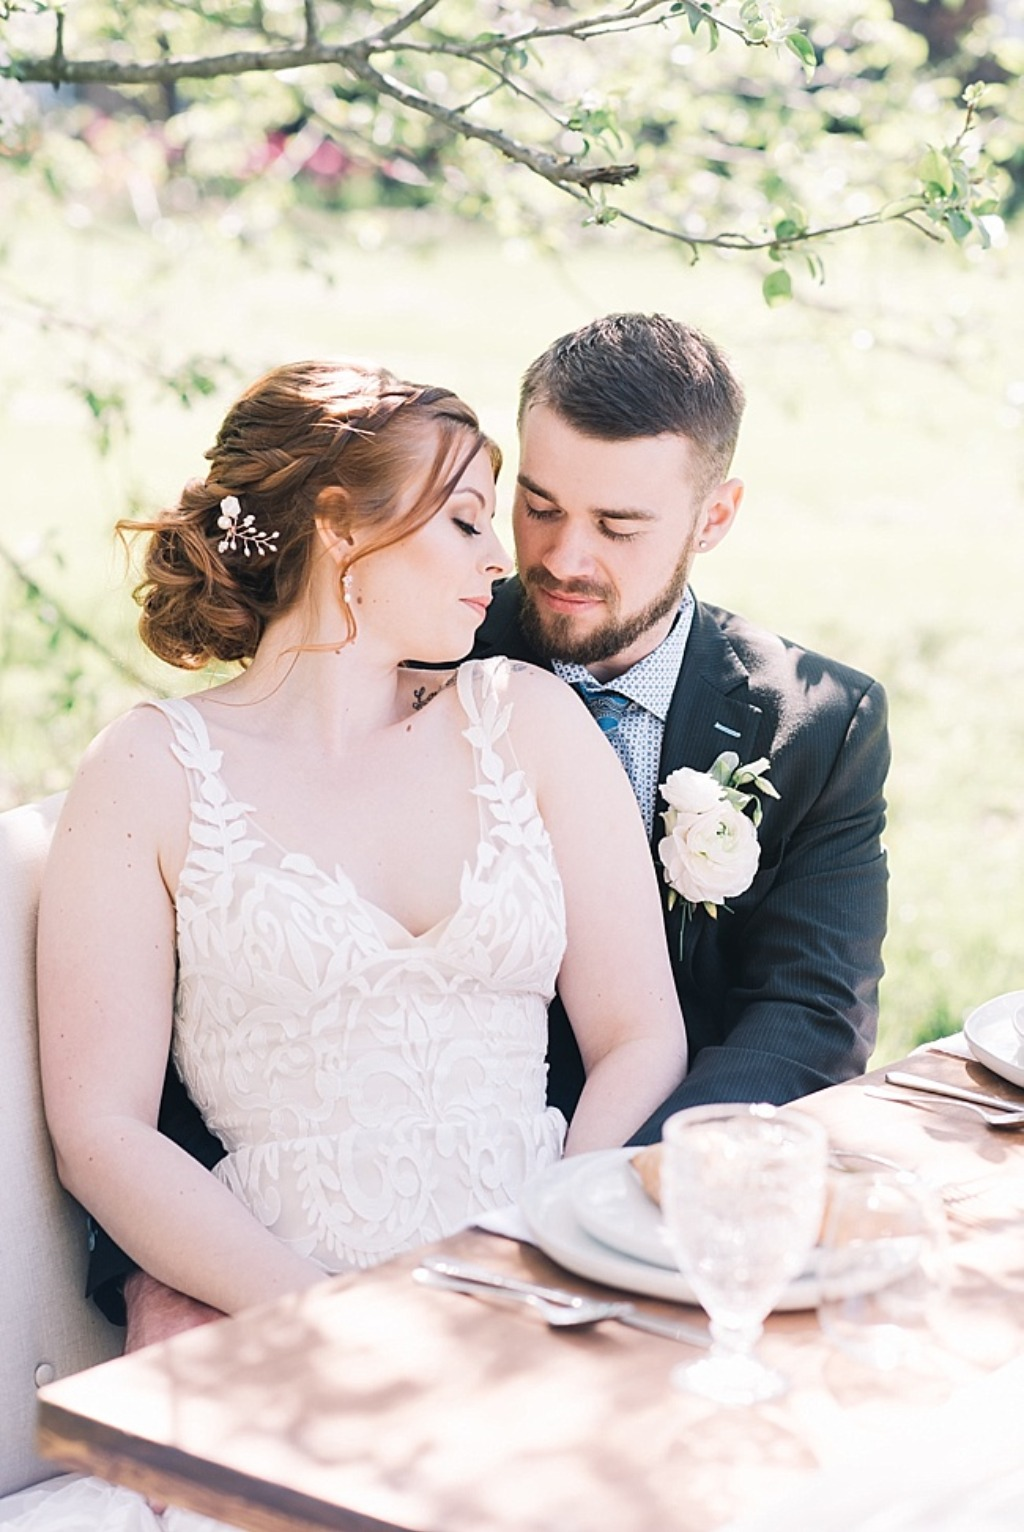 Rose gold wedding jewelry and bridal head piece for a springtime wedding in Maryland. Garden wedding inspiration with accessories by